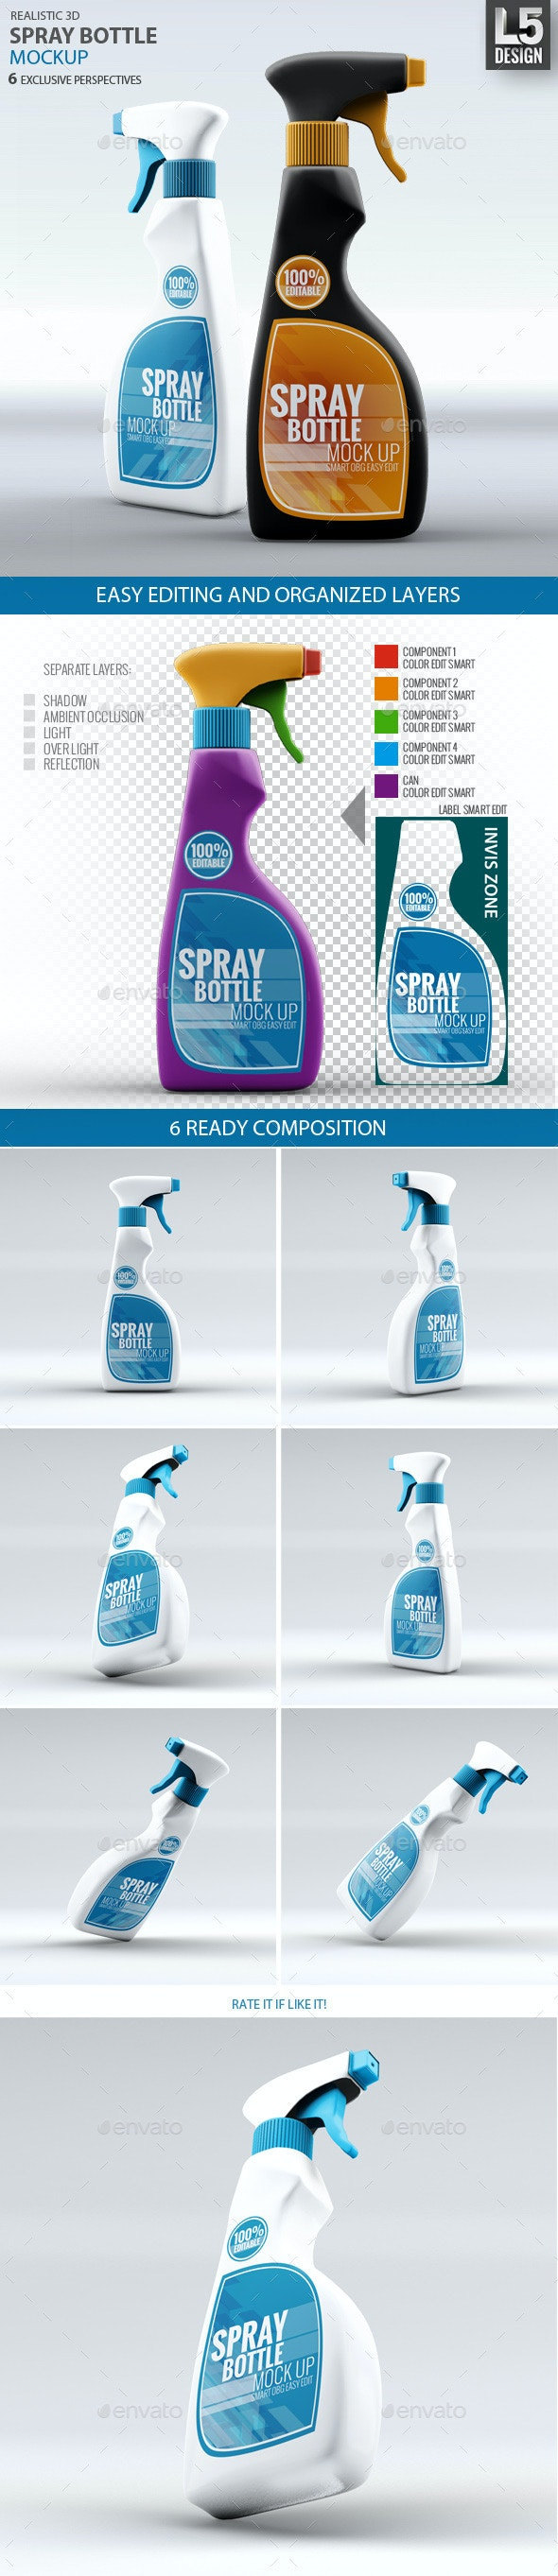 Spray Bottle Mock-Up - Packaging Product Mock-Ups